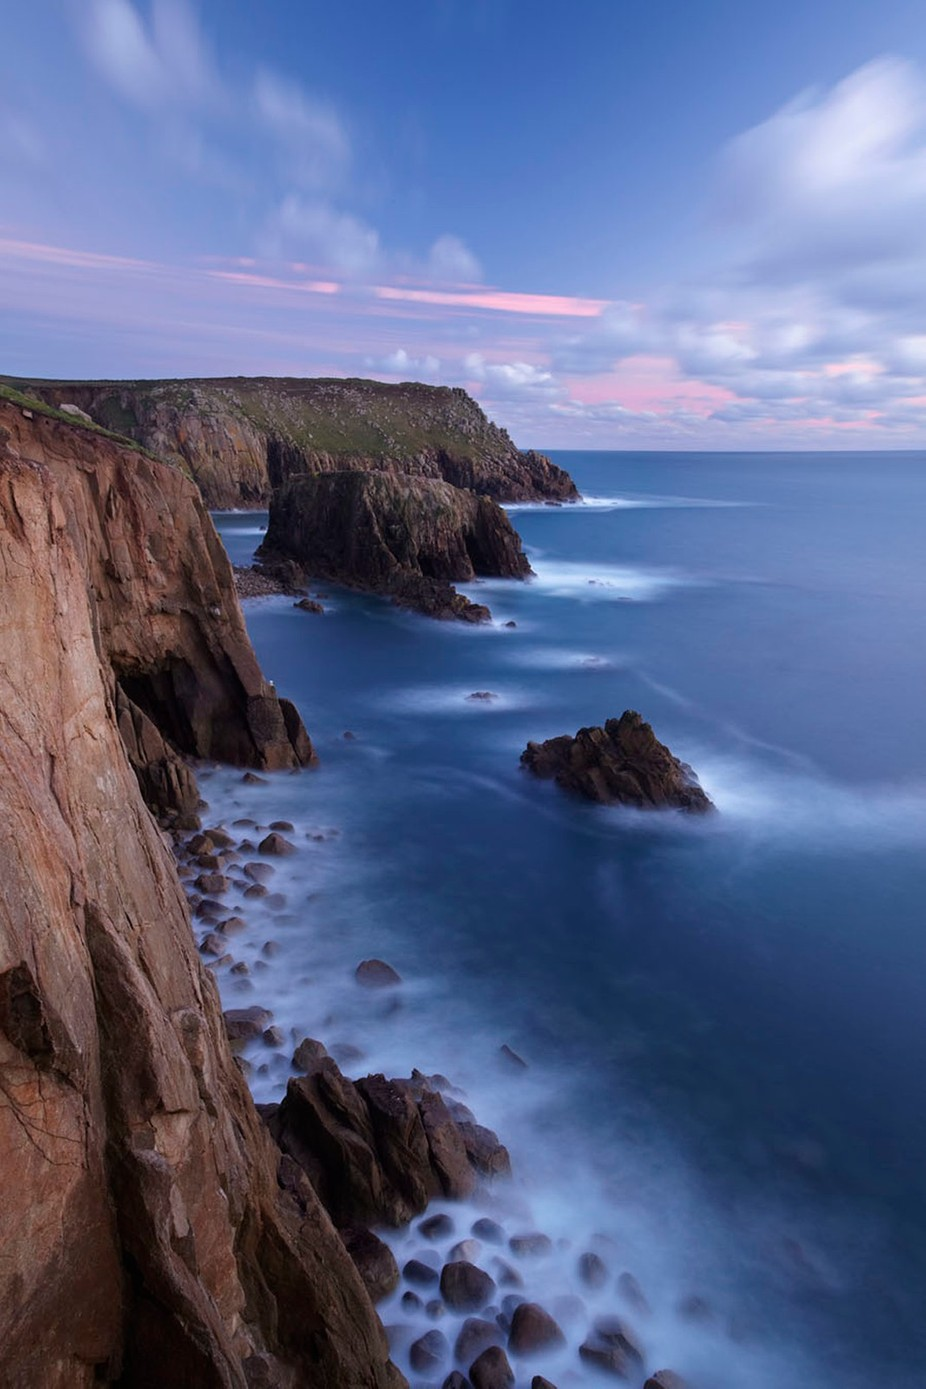 Lands End seascape, Cornwall, UK by LeePengelly - The Ocean Photo Contest